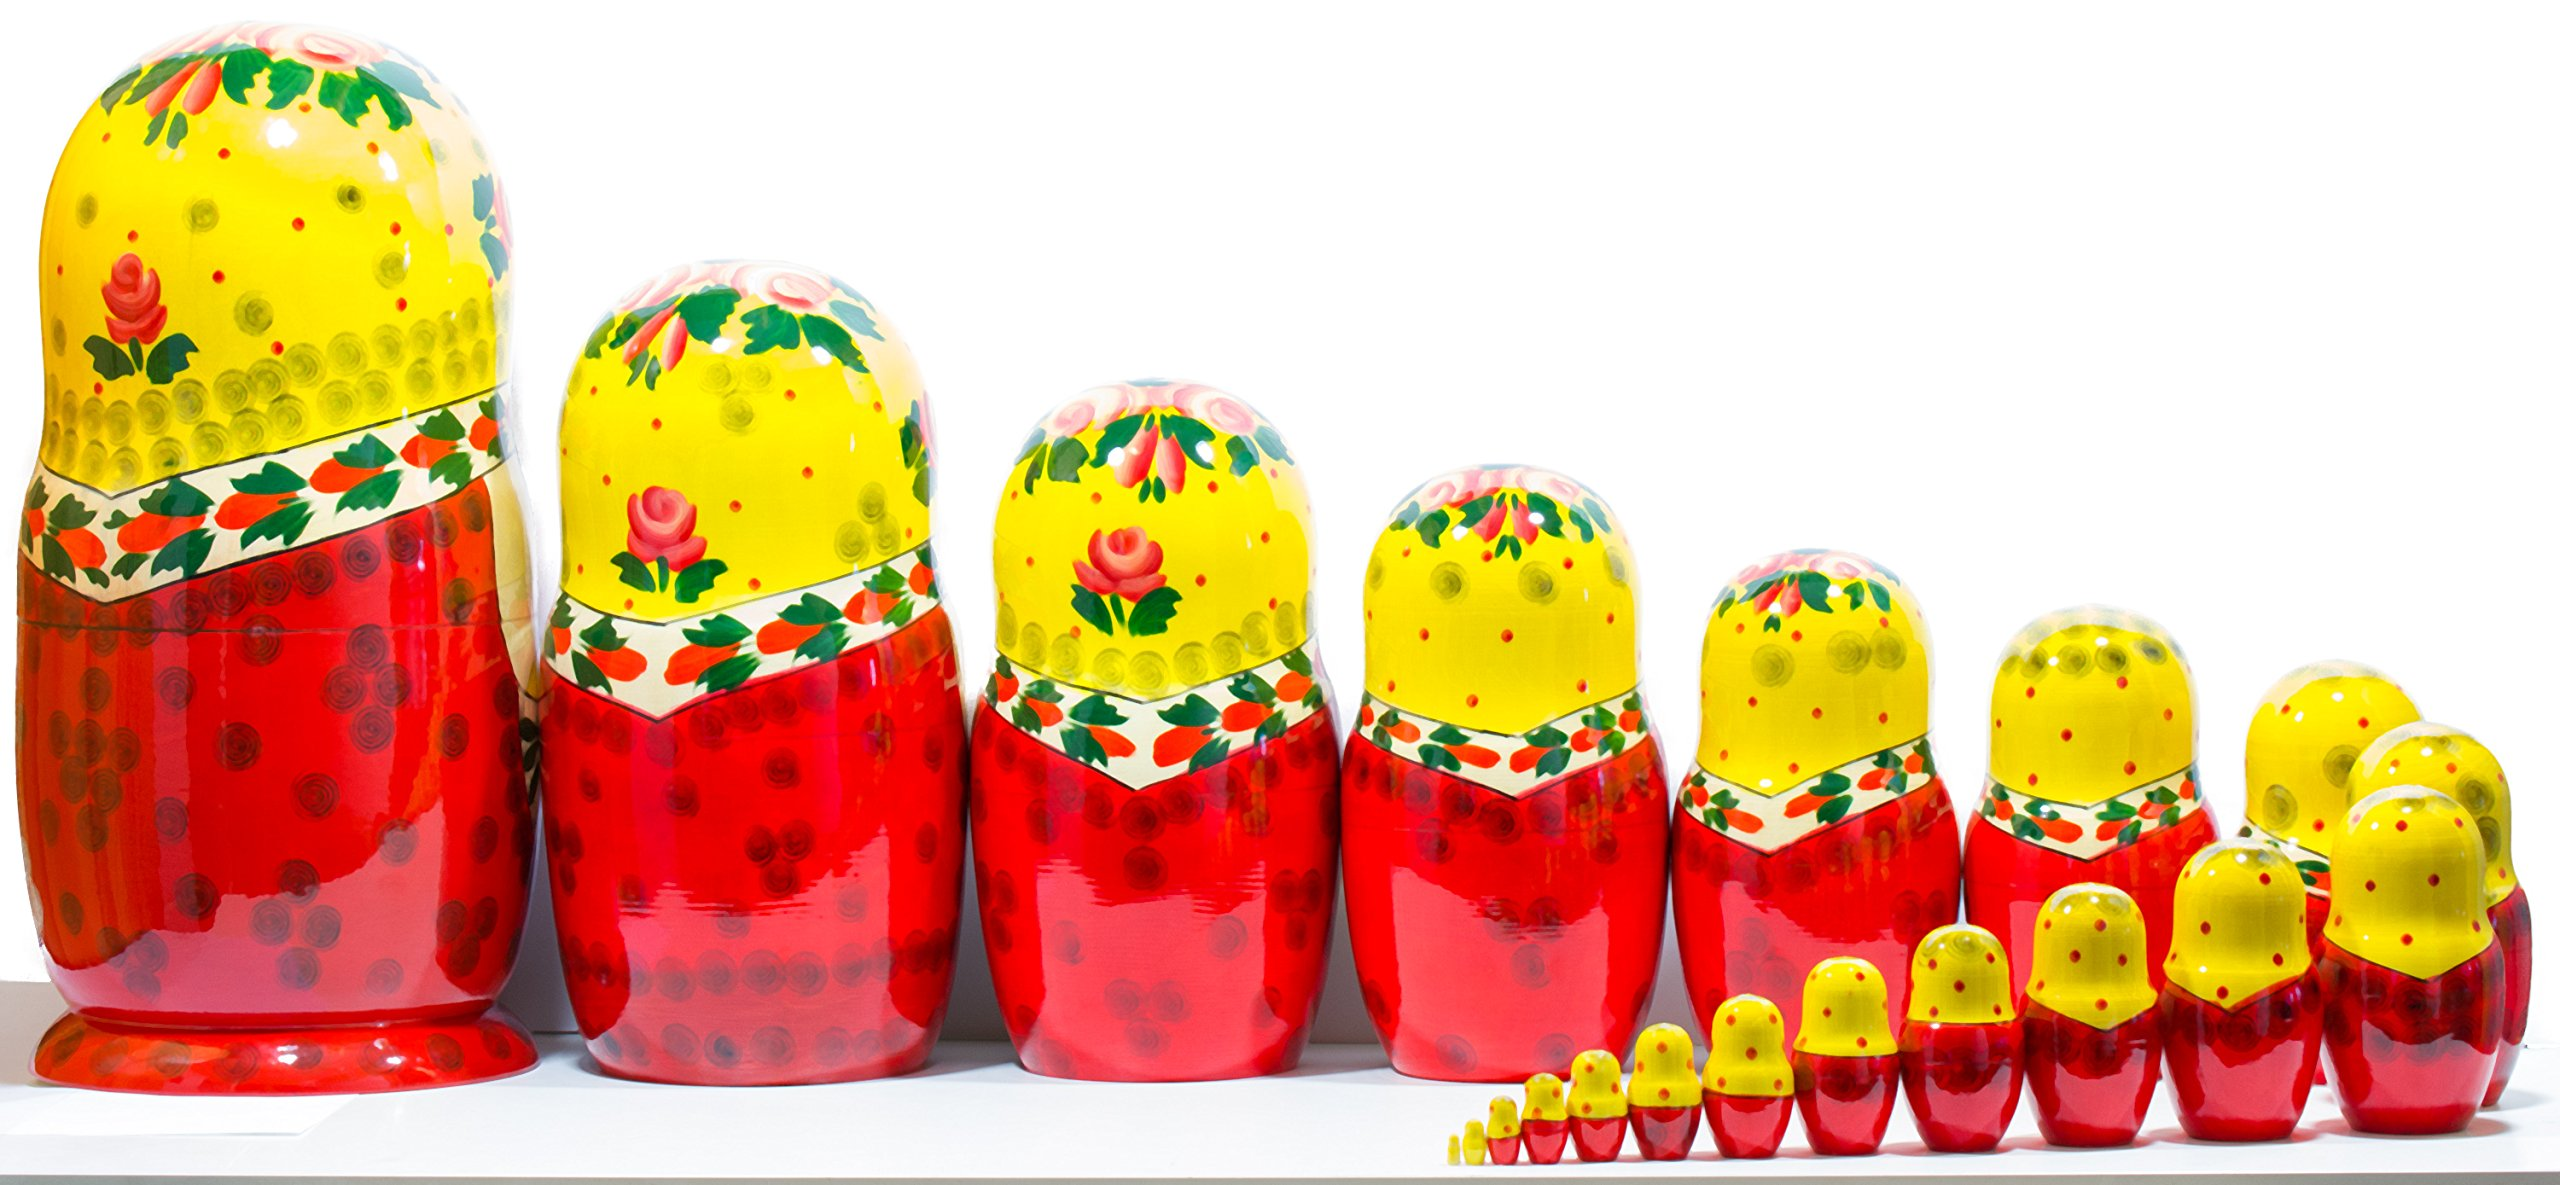 Russian Nesting Doll -Semenovo - Hand Painted in Russia - 6 Color|Size Variations - Wooden Decoration Gift Doll - Traditional Matryoshka Babushka (14``(20 Dolls in 1), Yellow - Red) by craftsfromrussia (Image #3)